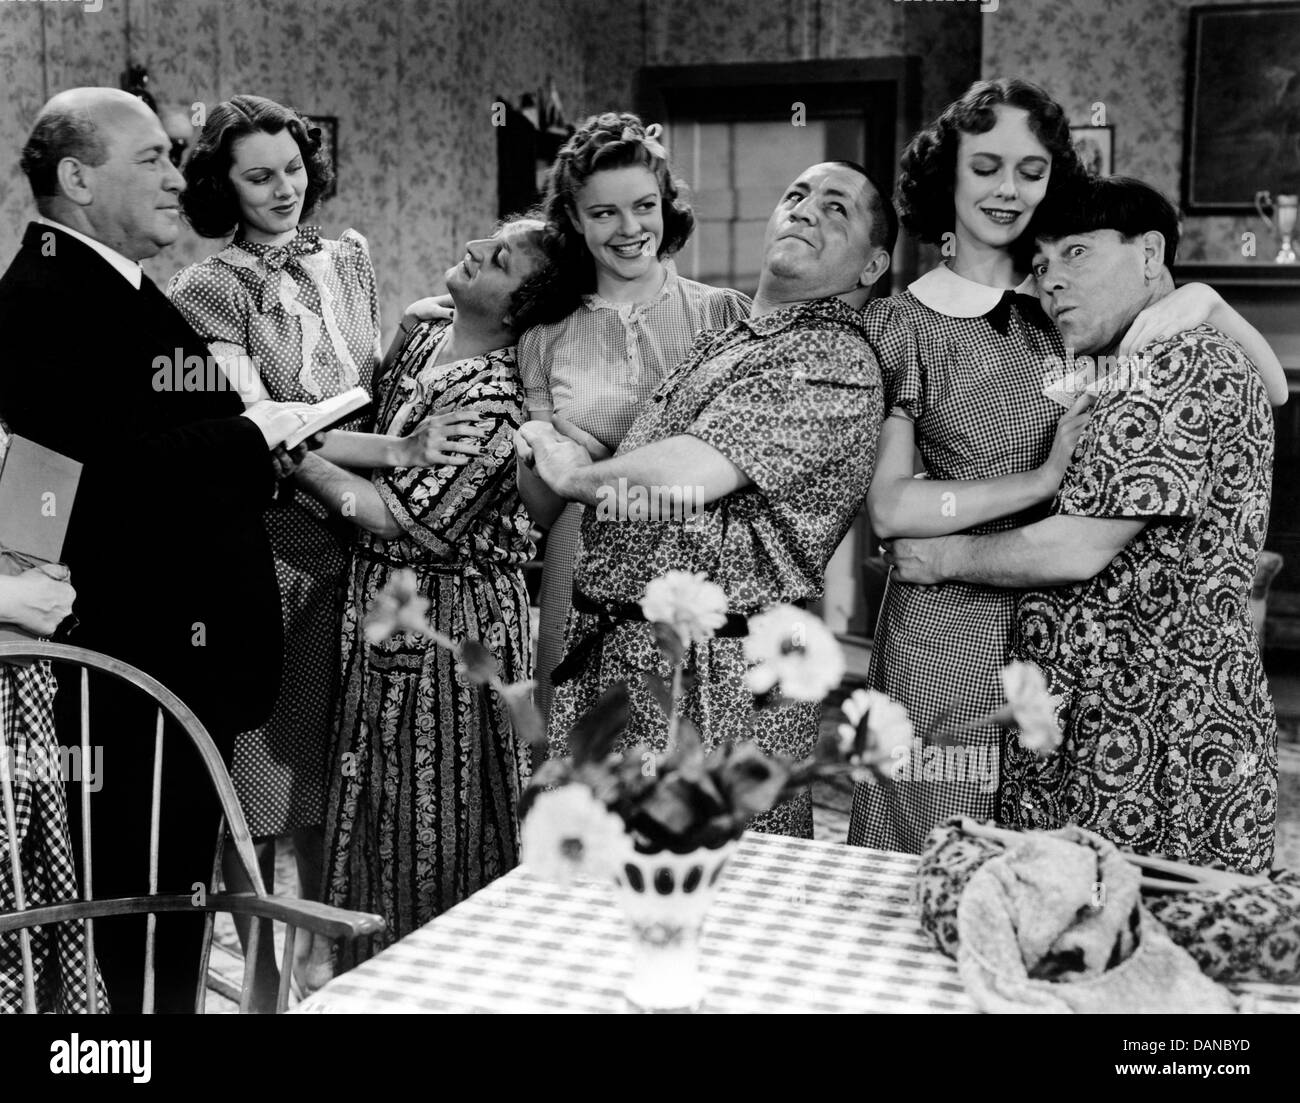 Image result for images of moe howard disguised as woman